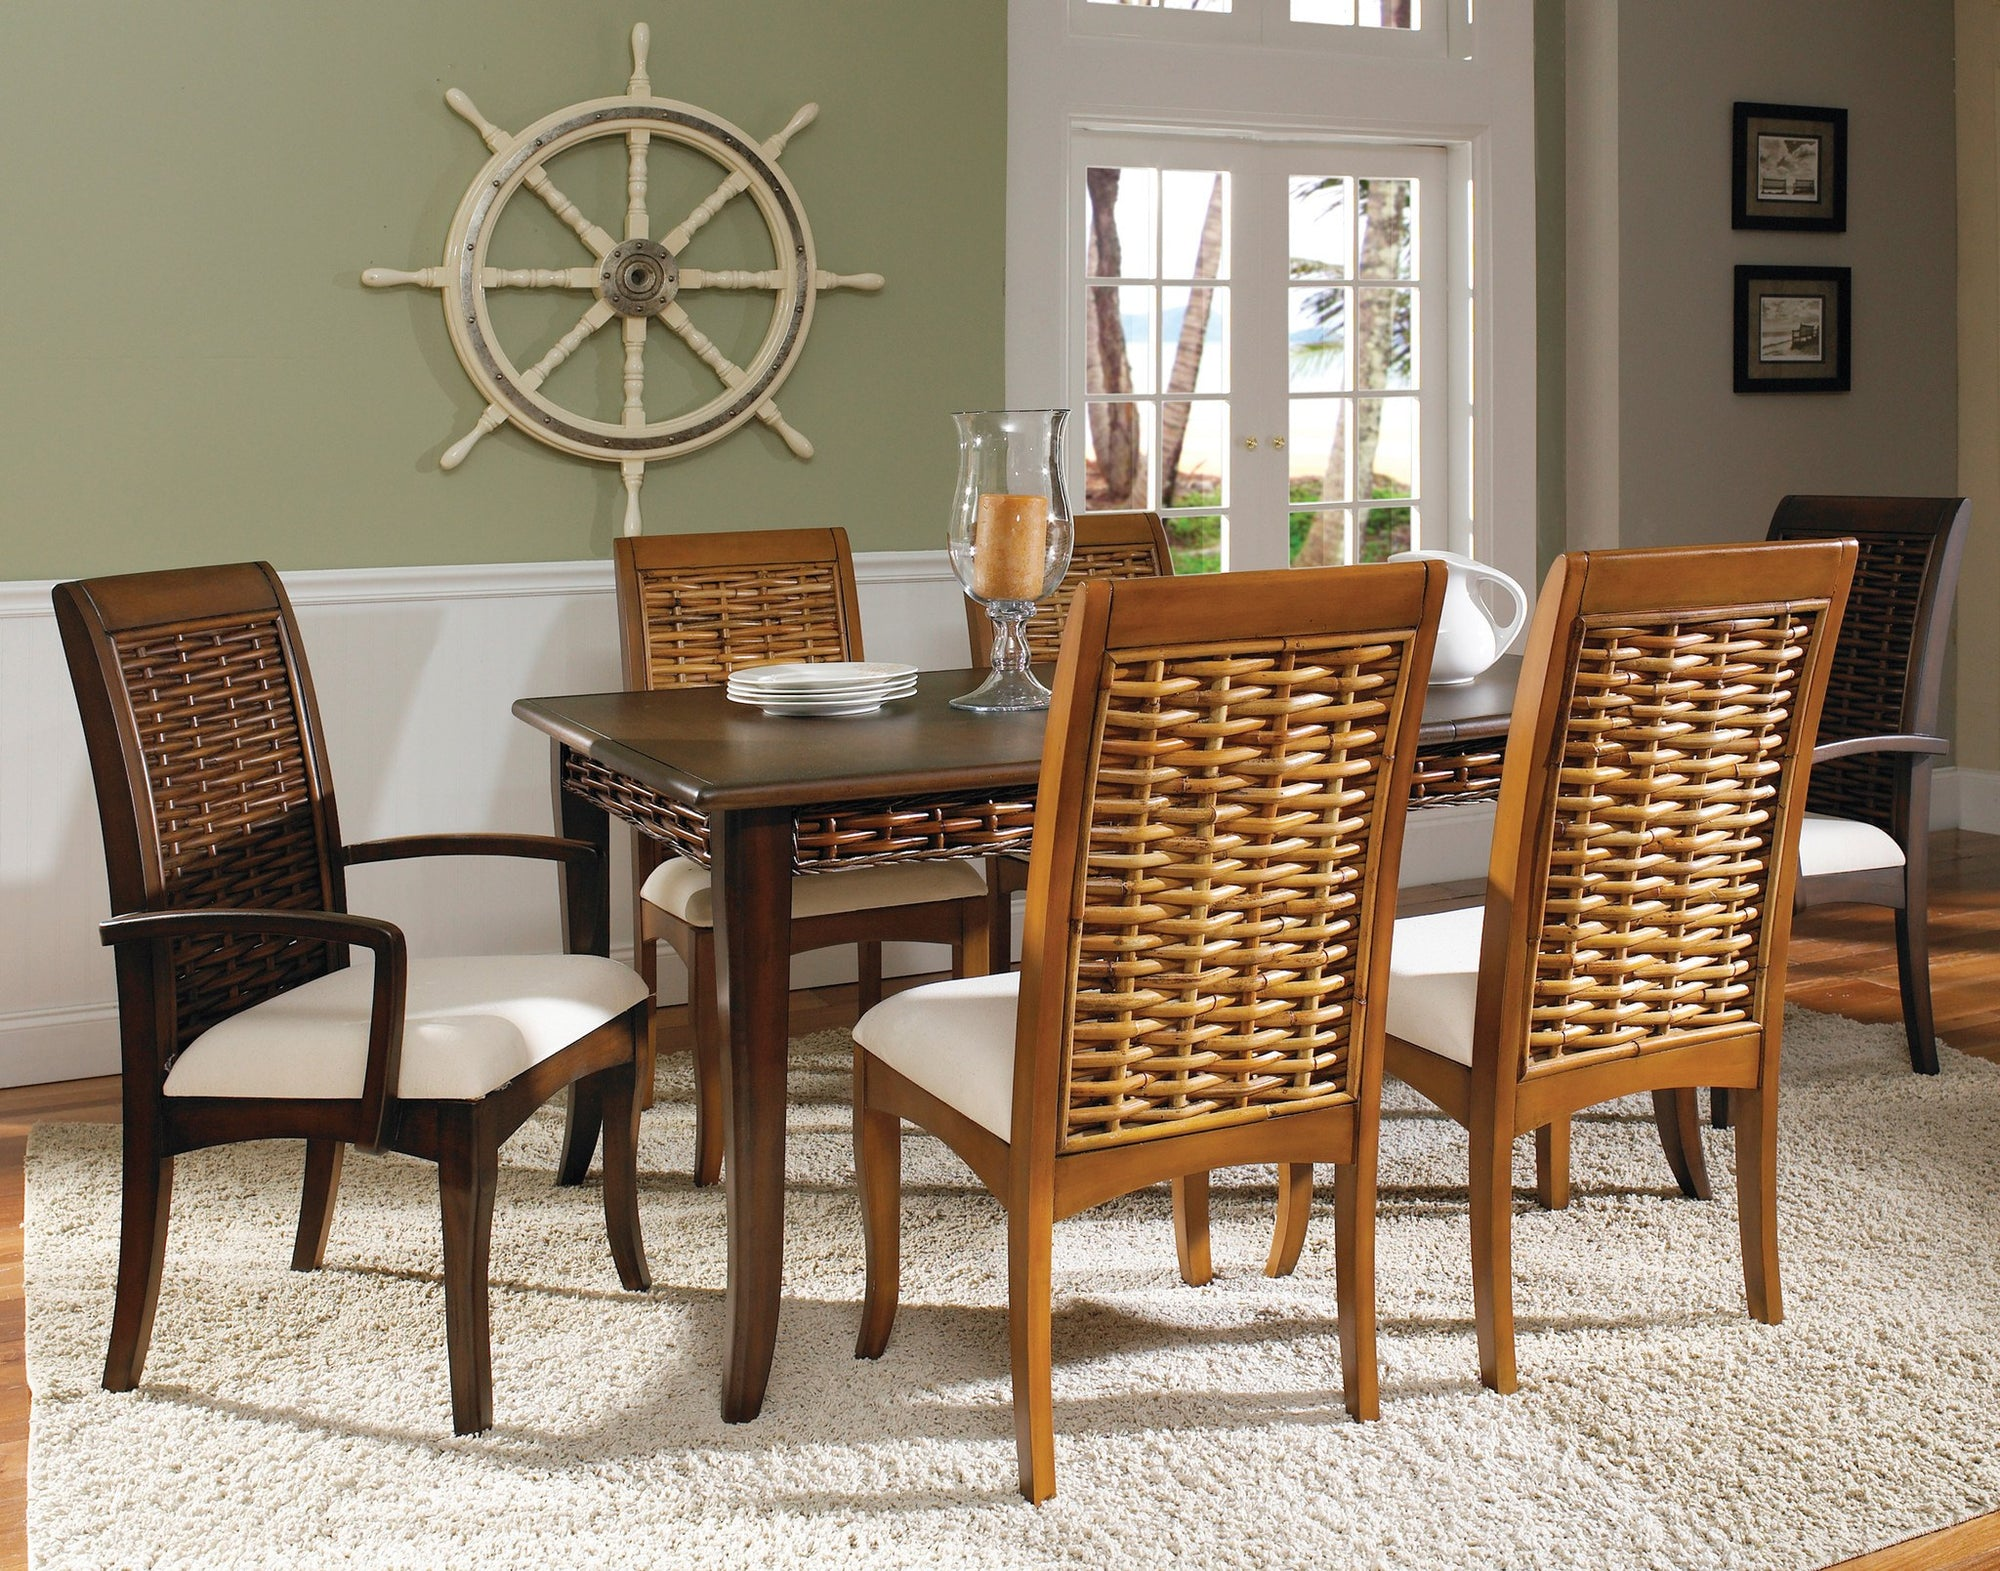 Designer Wicker & Rattan By Tribor Freeport Dining Arm Chair by Designer Wicker from Tribor Dining Chair - Rattan Imports